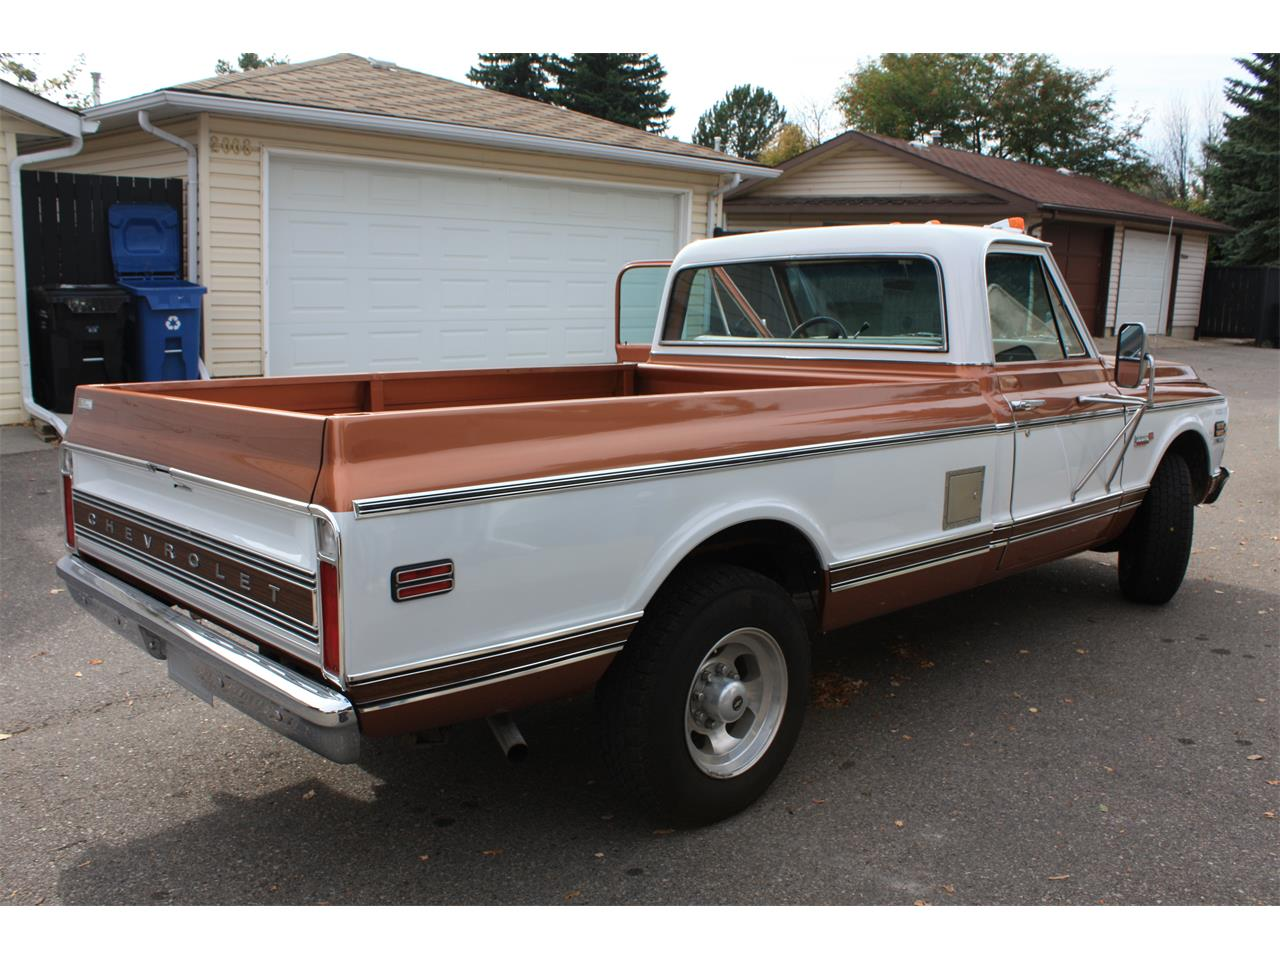 Large Picture of Classic 1971 Chevrolet Cheyenne located in Alberta Offered by a Private Seller - OGWQ